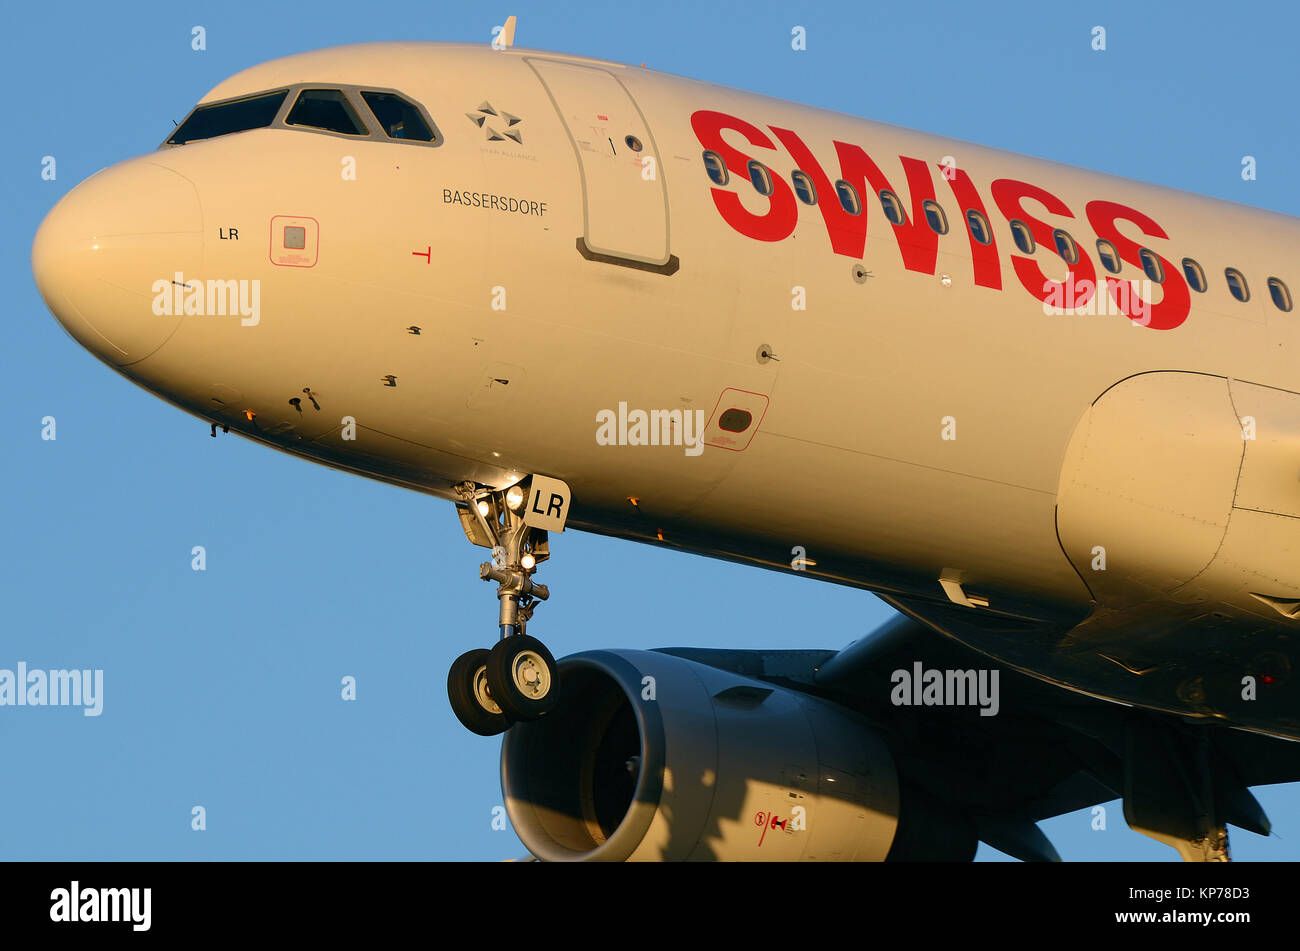 Swiss Airbus A320-200 jet plane HB-JLR named Bassersdorf landing at London Heathrow Airport, UK. Space for copy - Stock Image